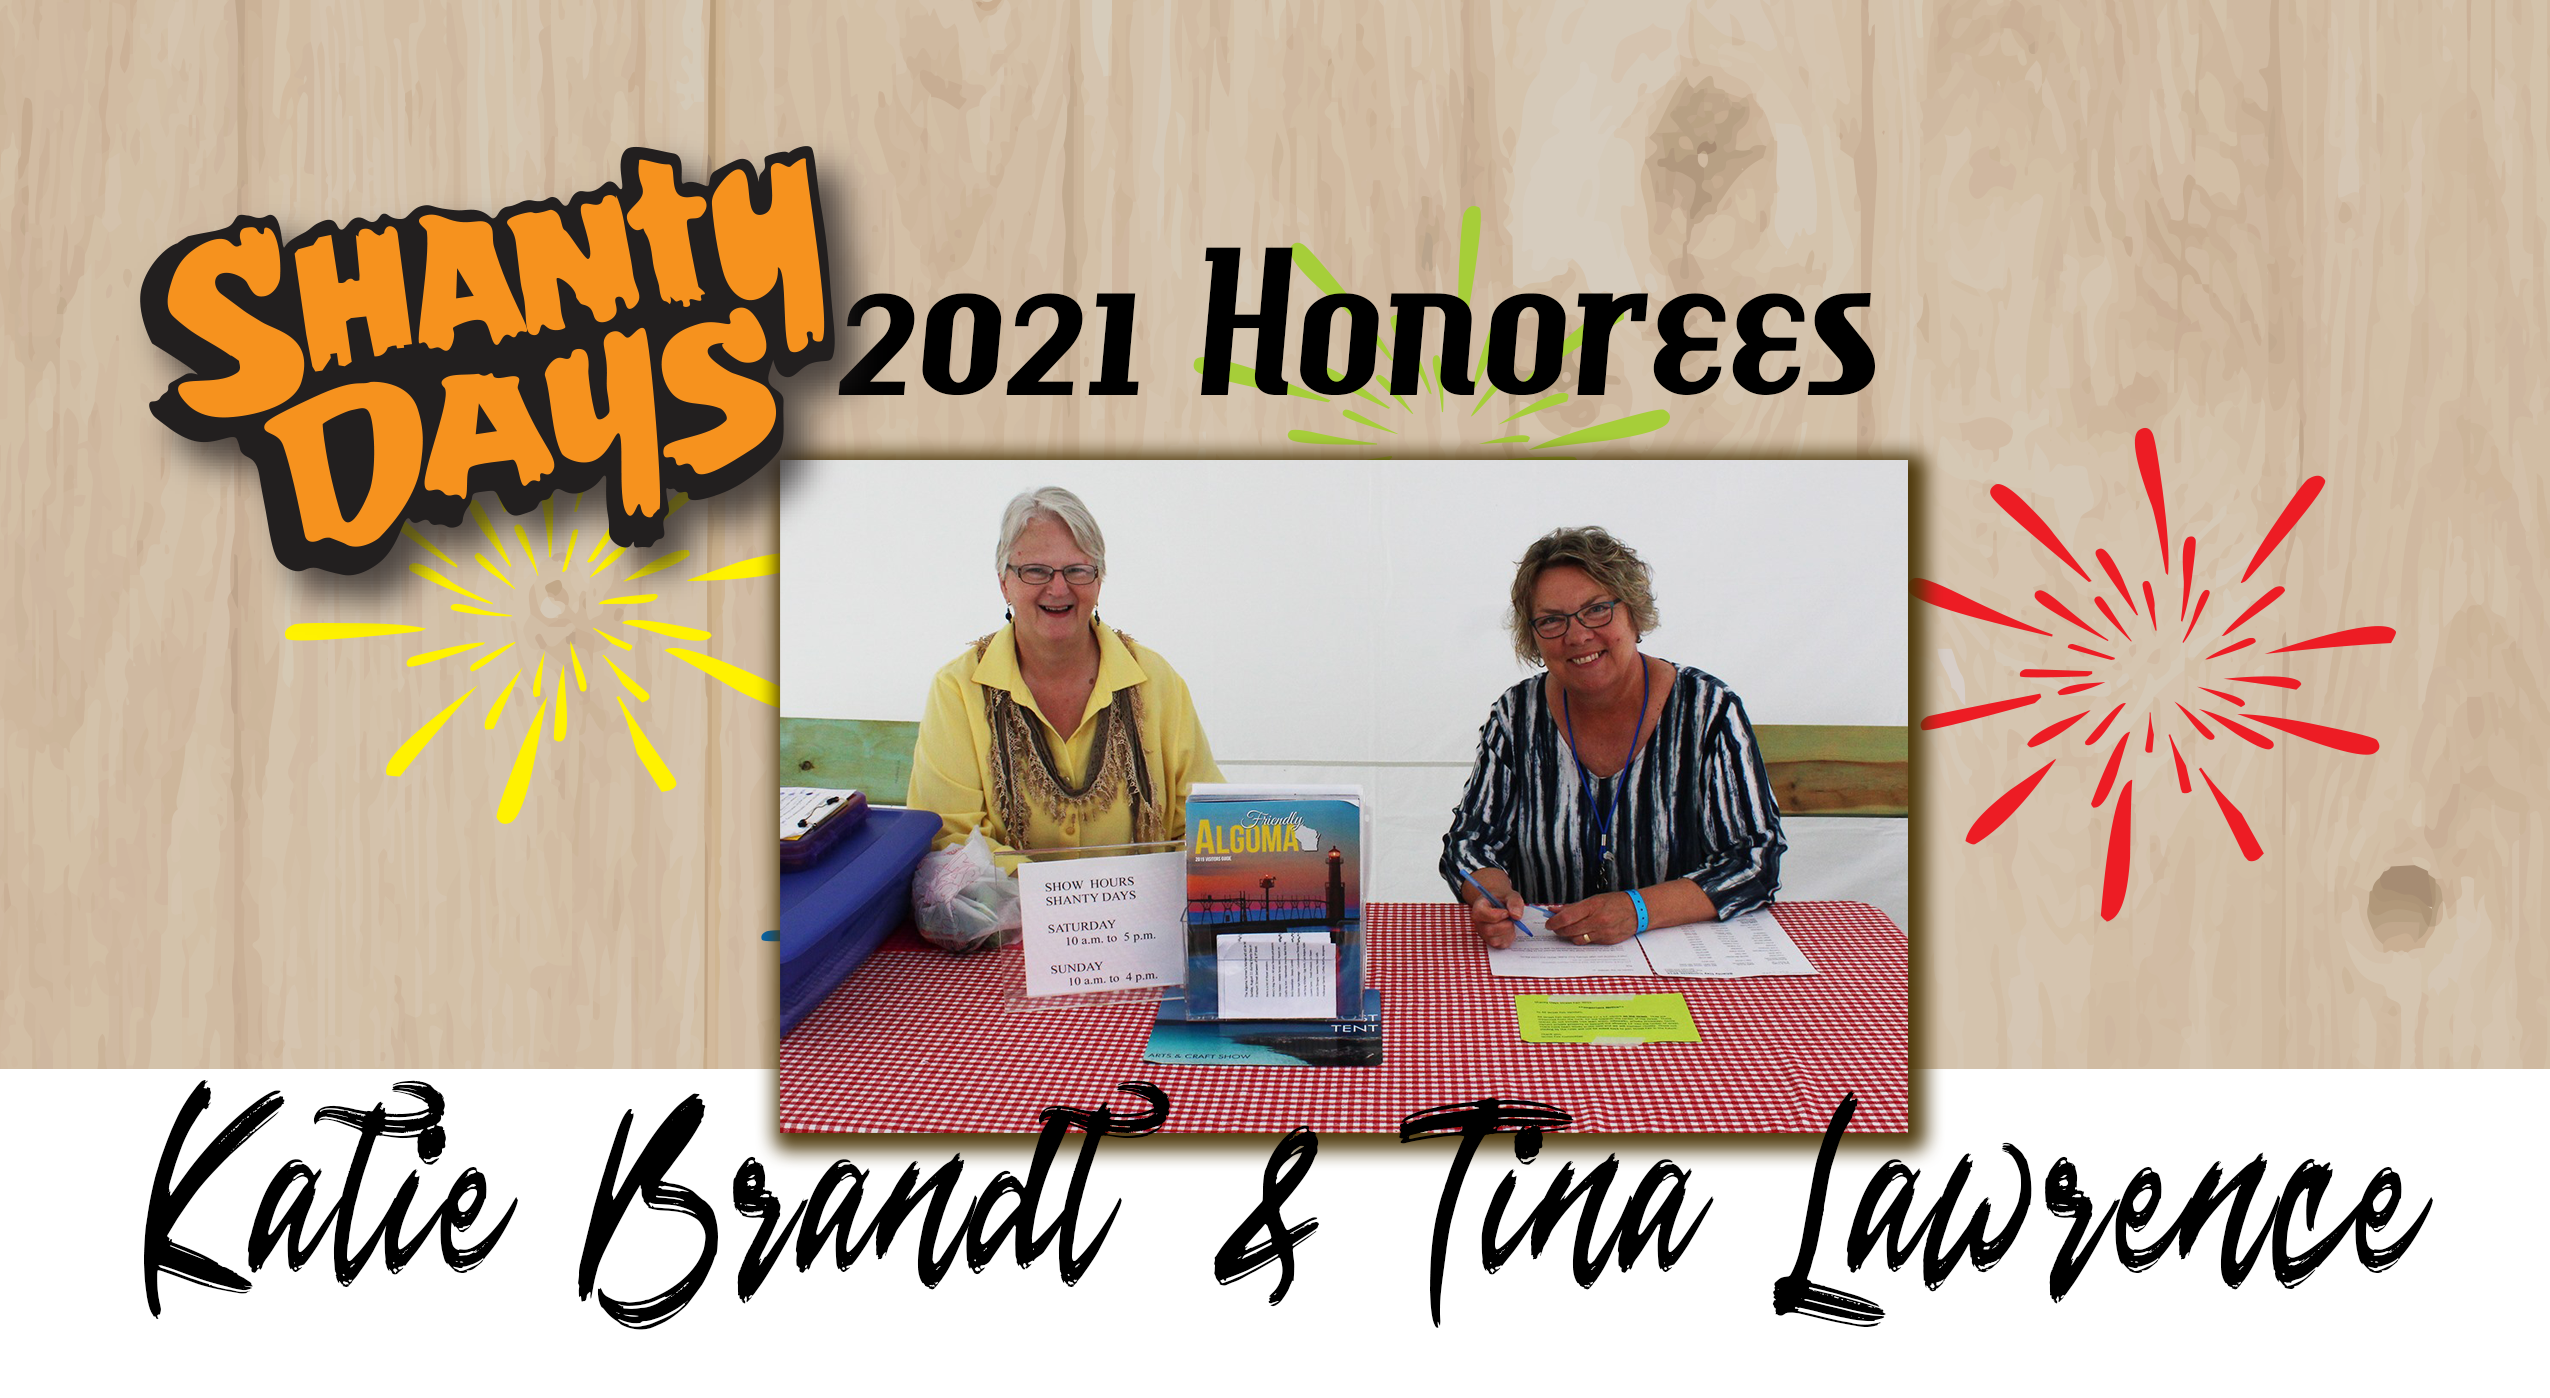 2021 Shanty Days Honorees Katie Brandt & Tina Lawrence